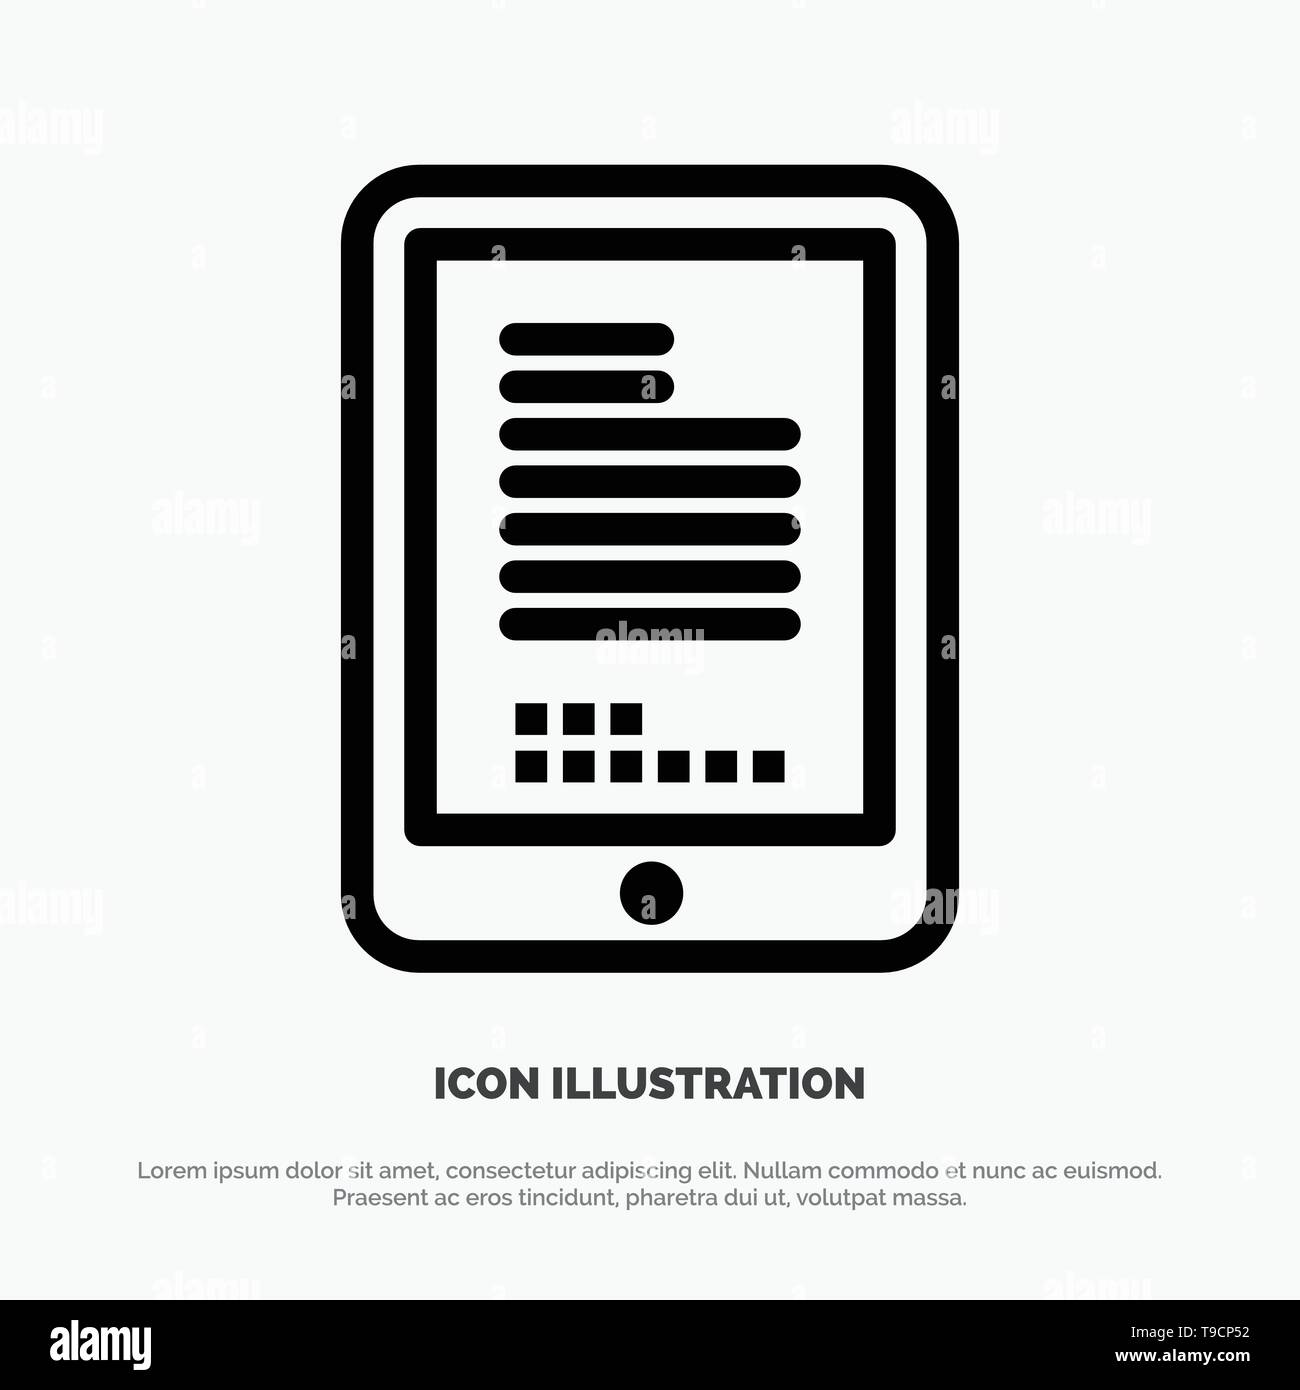 Mobile, Coding, Hardware, Cell Vector Line Icon - Stock Image